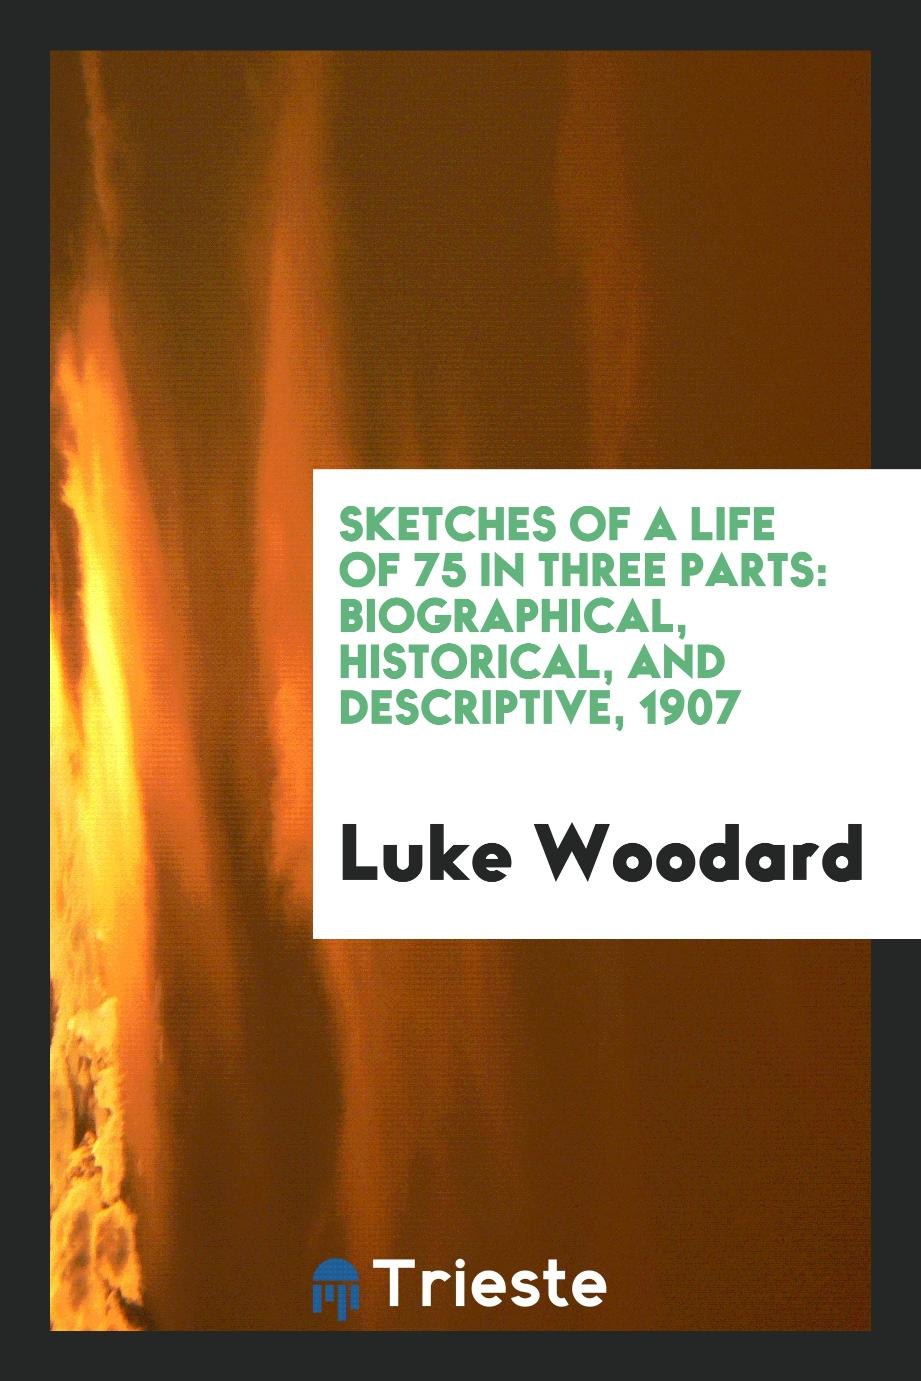 Sketches of a life of 75 in three parts: biographical, historical, and descriptive, 1907